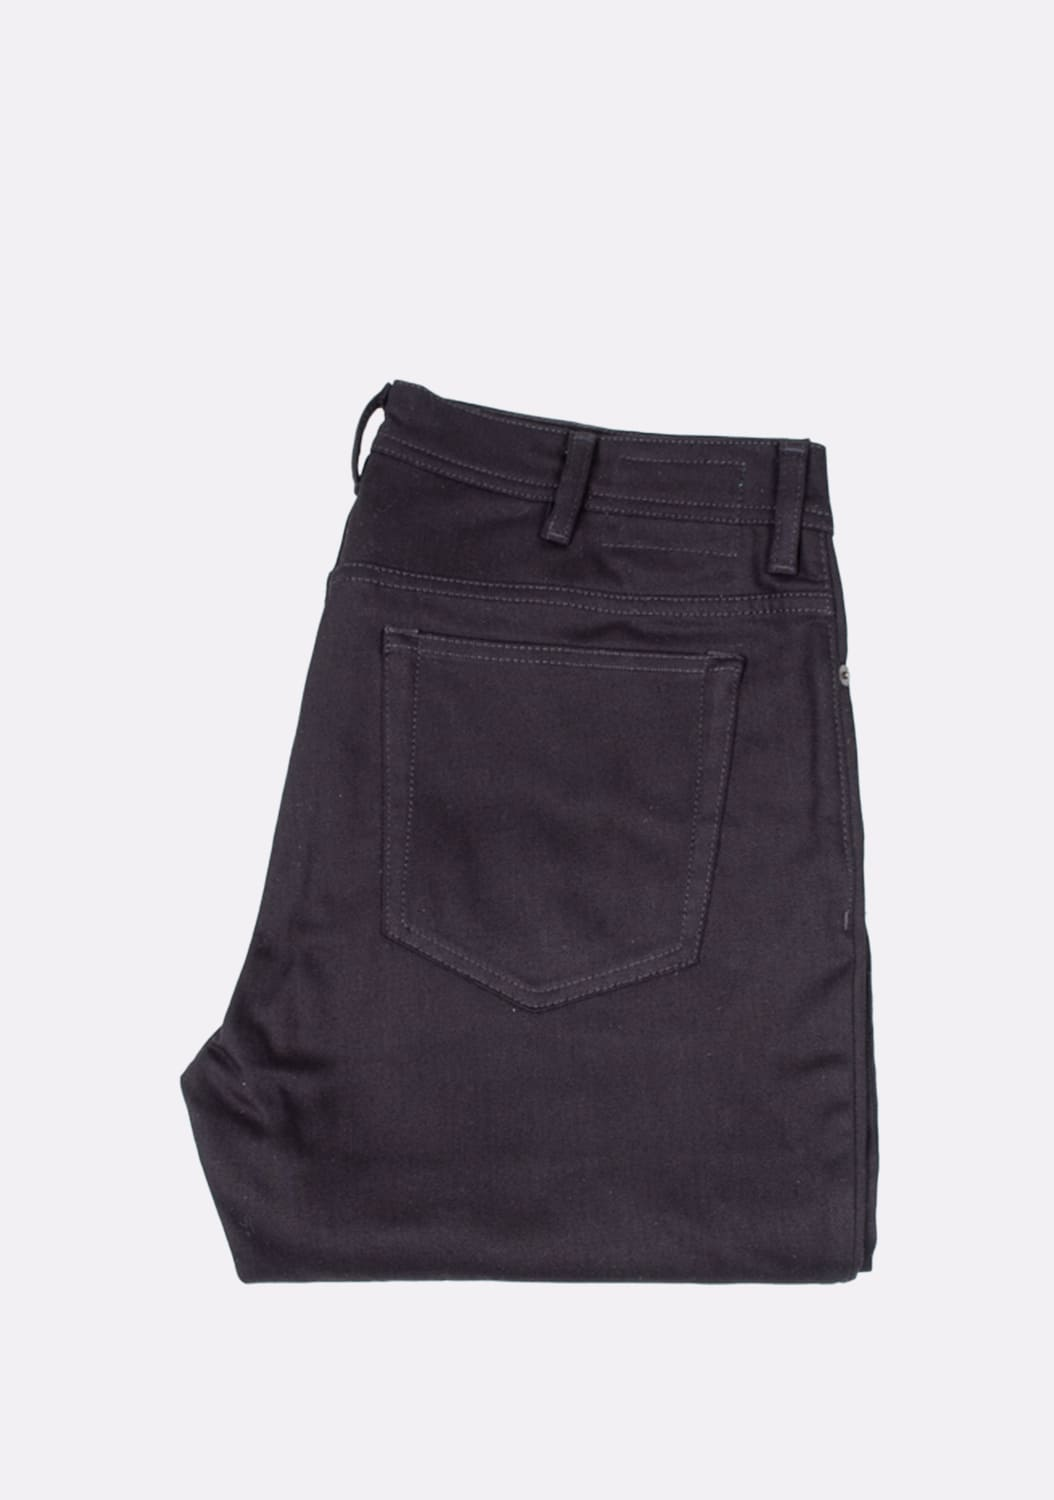 Acne-Studios-Blå-Konst-North-Stay-Black-dzinsai-dydis-34-32 (4)